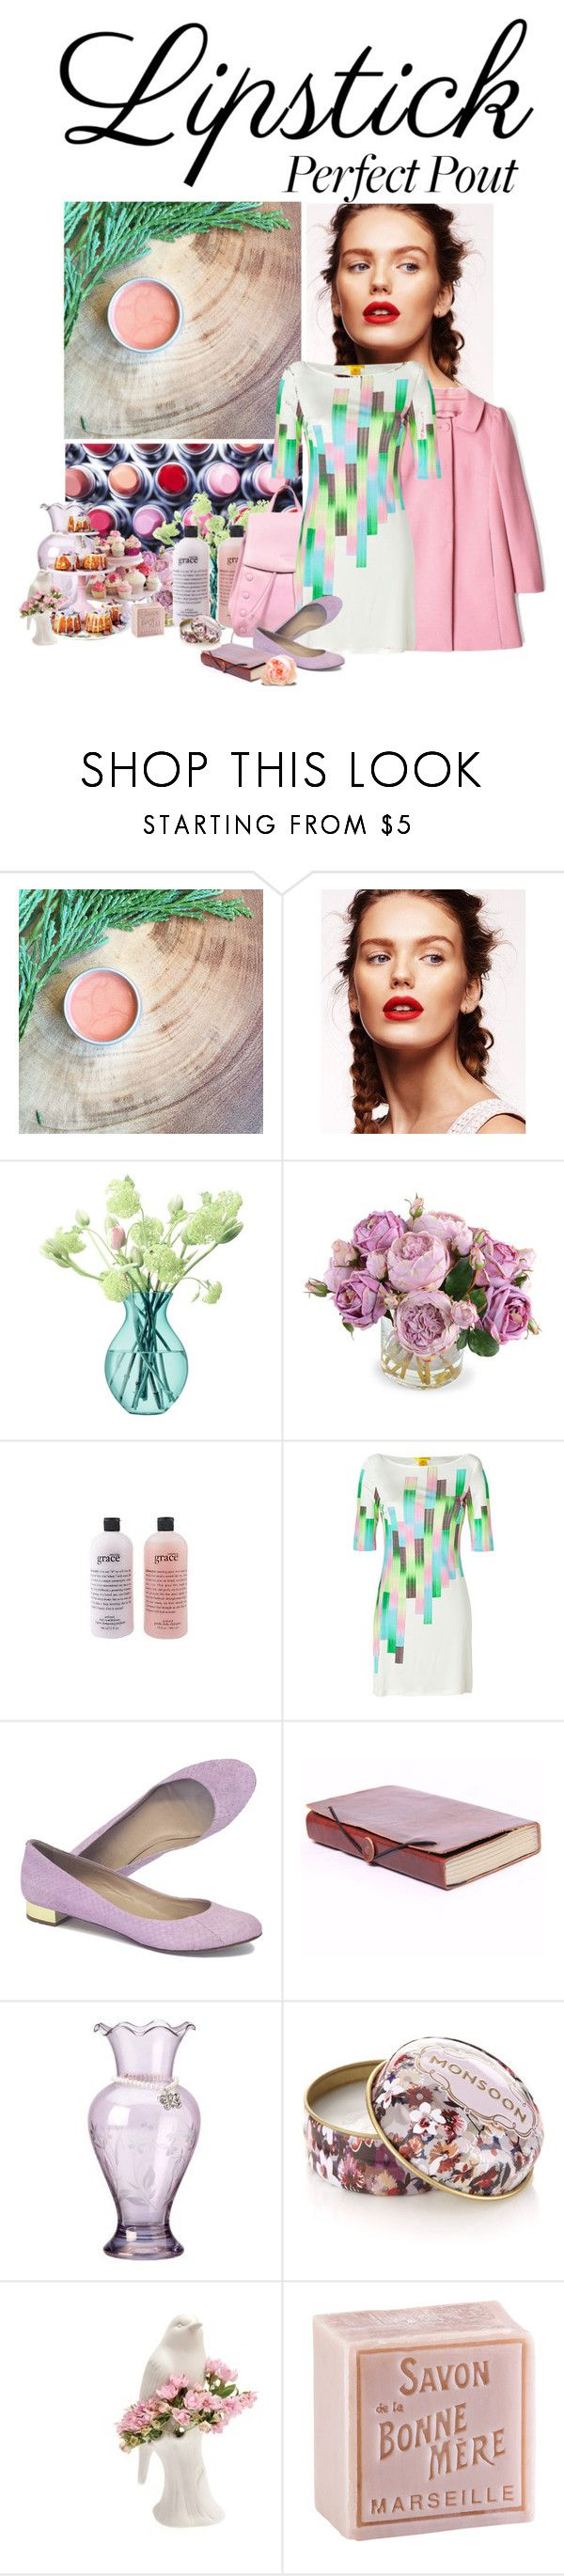 """""""A Spring Look"""" by dreams-of-a-masked-nightingale ❤ liked on Polyvore featuring beauty, House of Fraser, LSA International, New Growth Designs, philosophy, RED Valentino, CÉLINE, Catherine Malandrino, J.Crew and Lenox"""